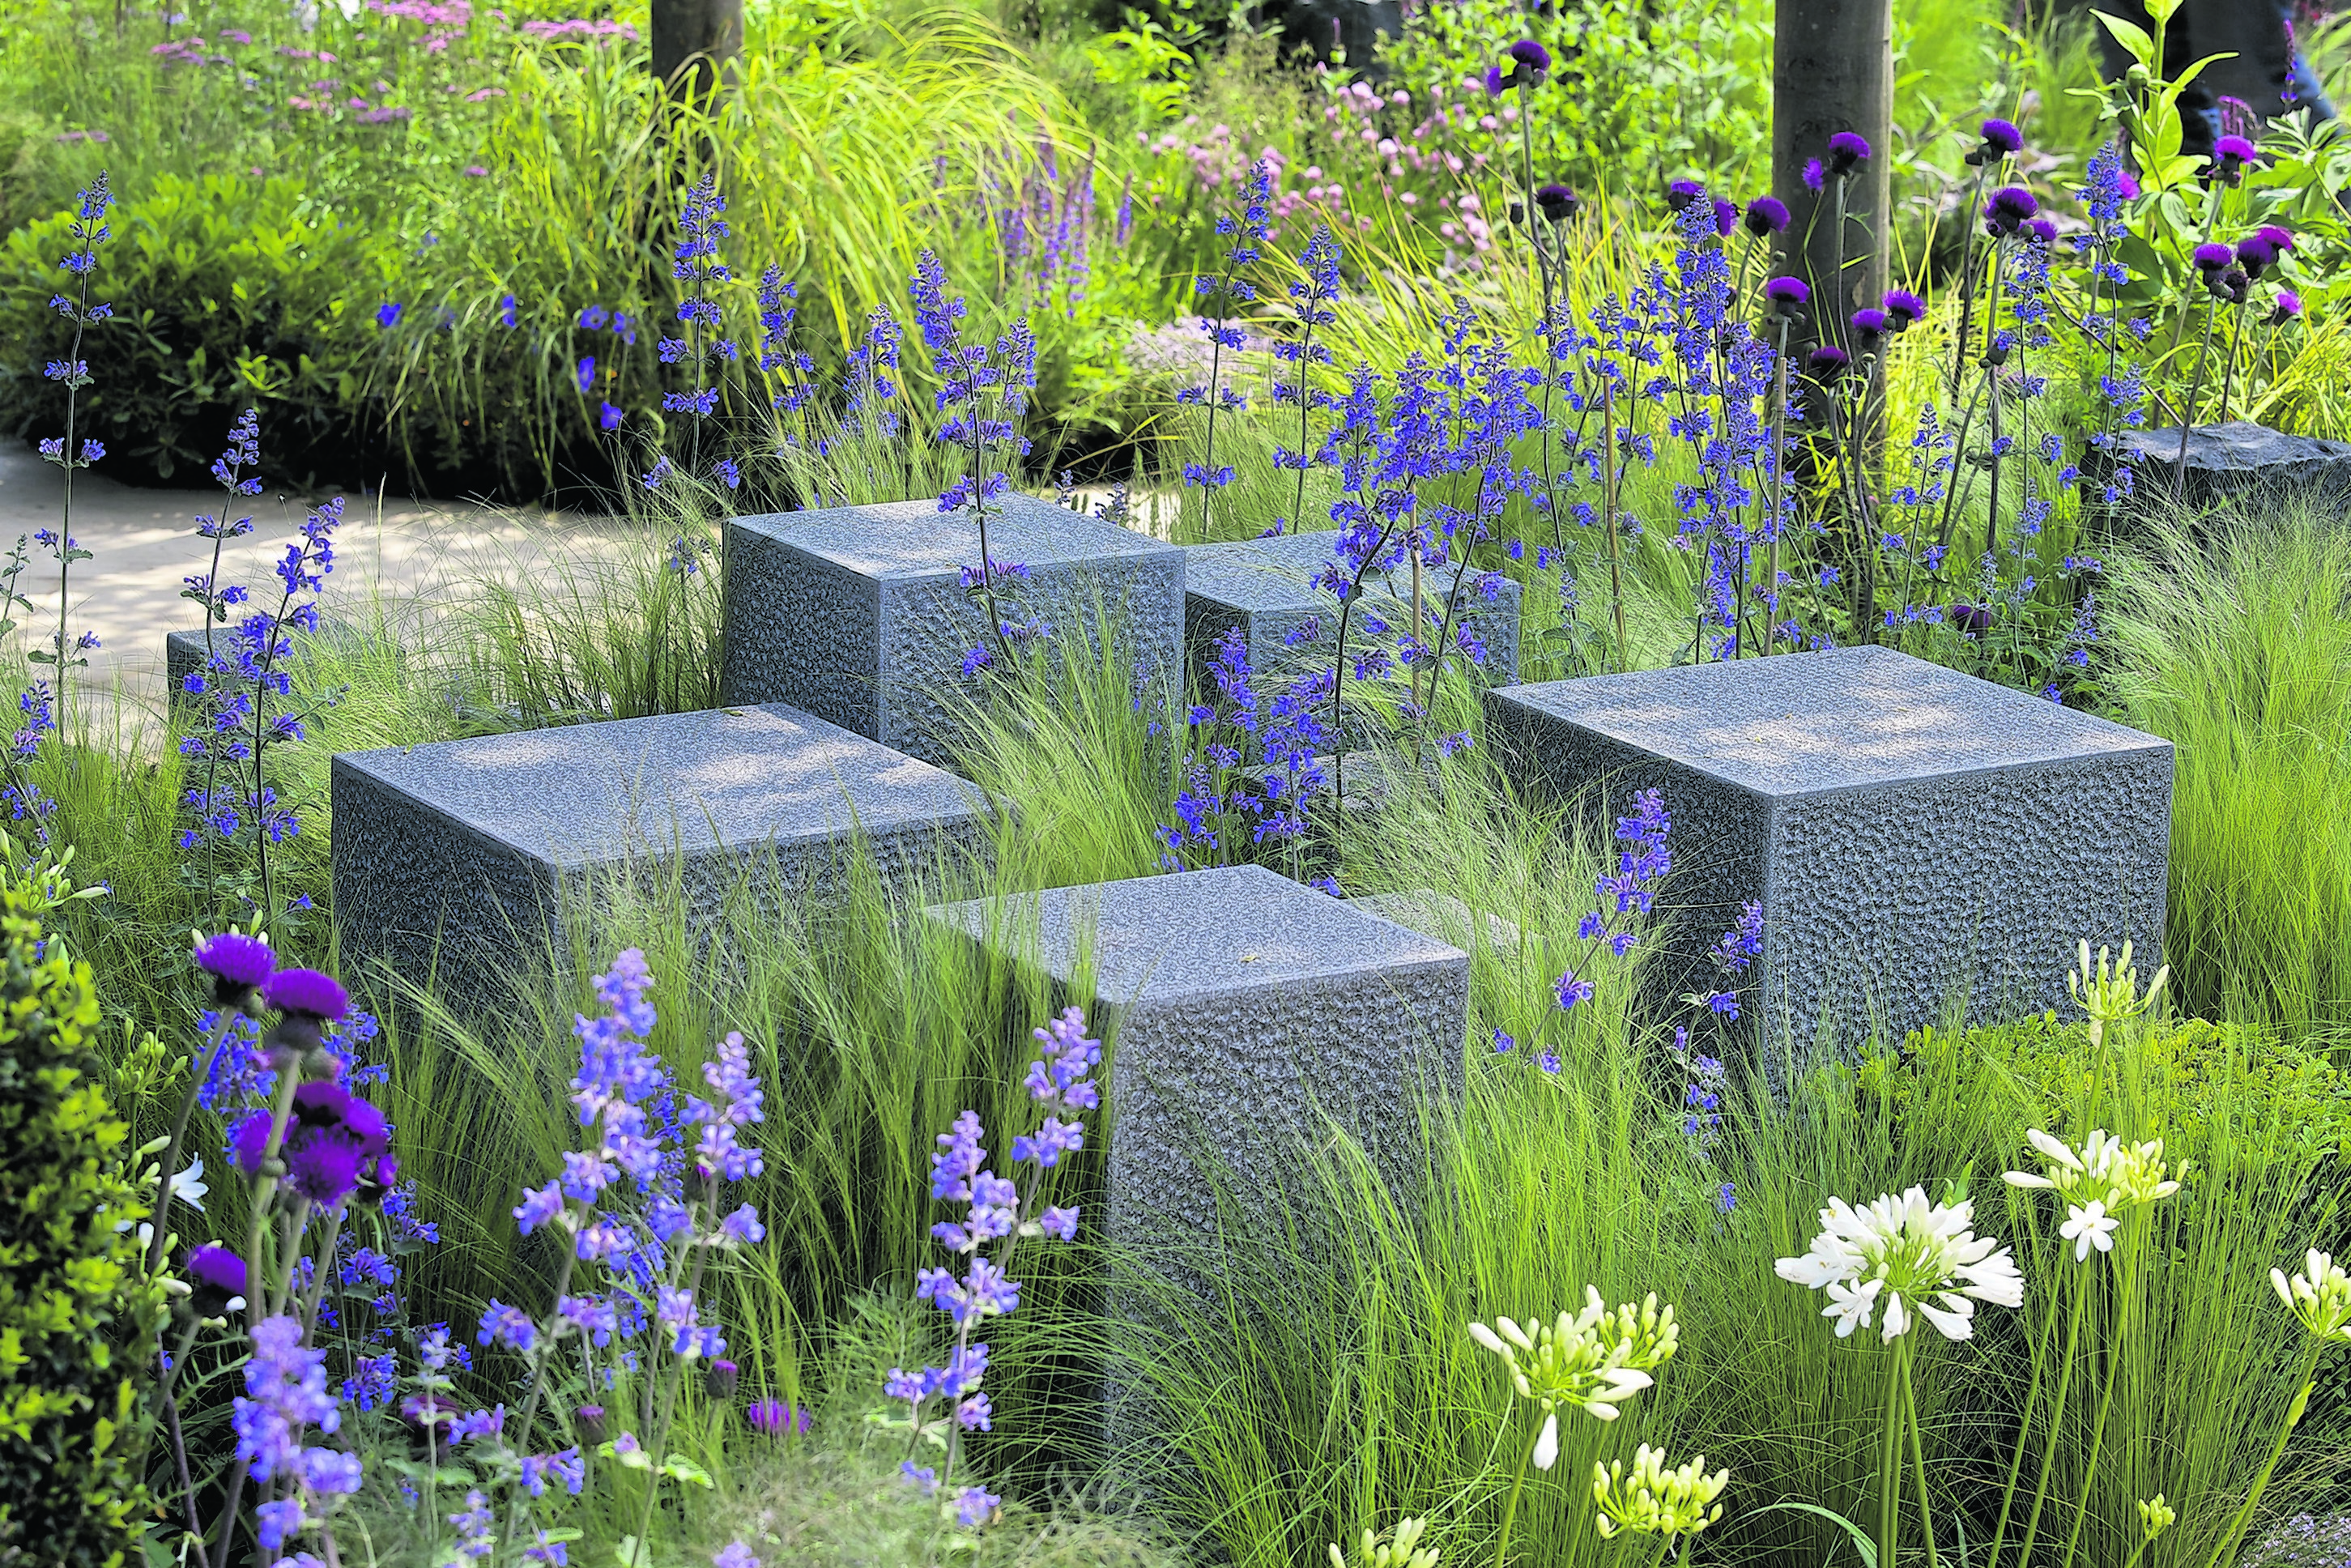 The Hope on the Horizon garden, sponsored by David Brownlow and designed by Matt Keightley, at the RHS Chelsea Flower Show 2014.